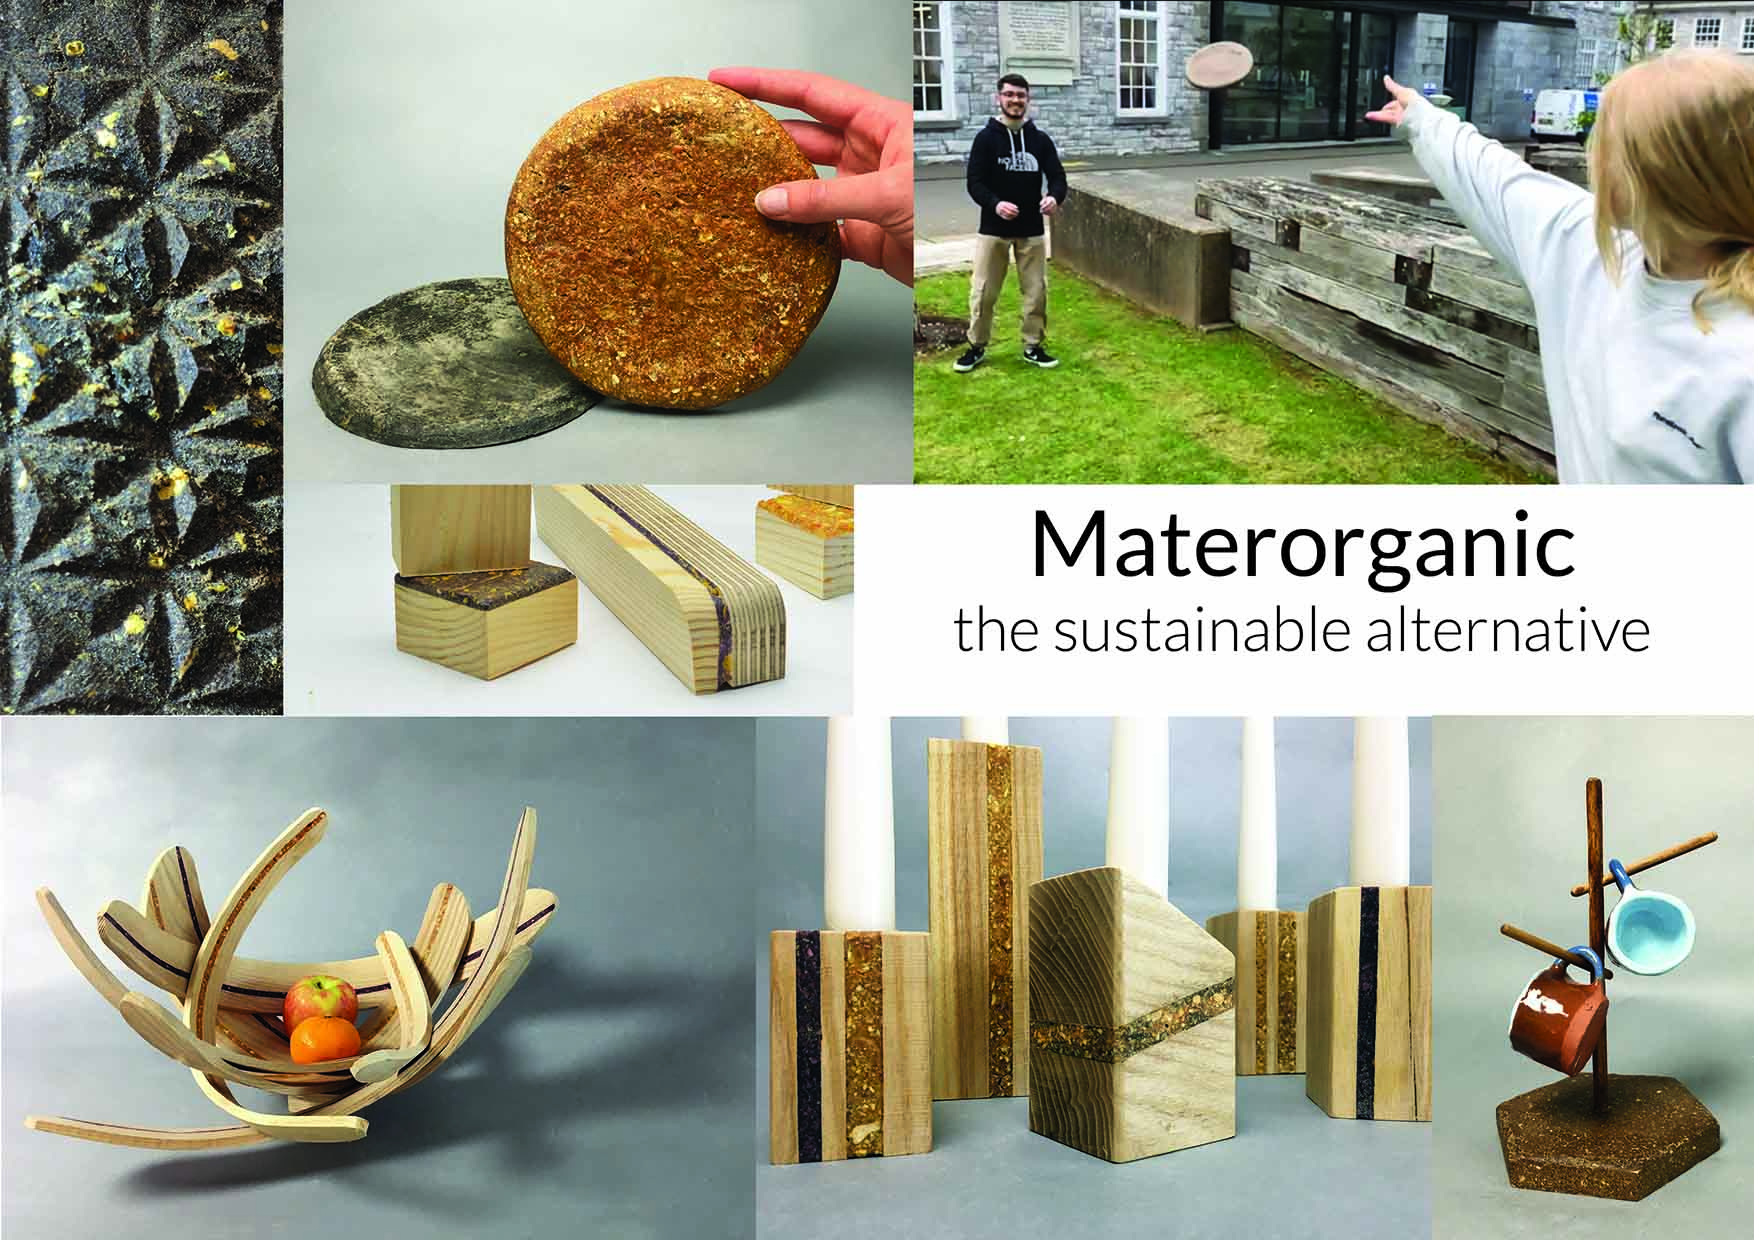 Materorganic - The Organic BEE Frisbees, The Fruity Fruitbowl, The Candlewood, The Sticky Sandwich, The Coffee Cup Holder